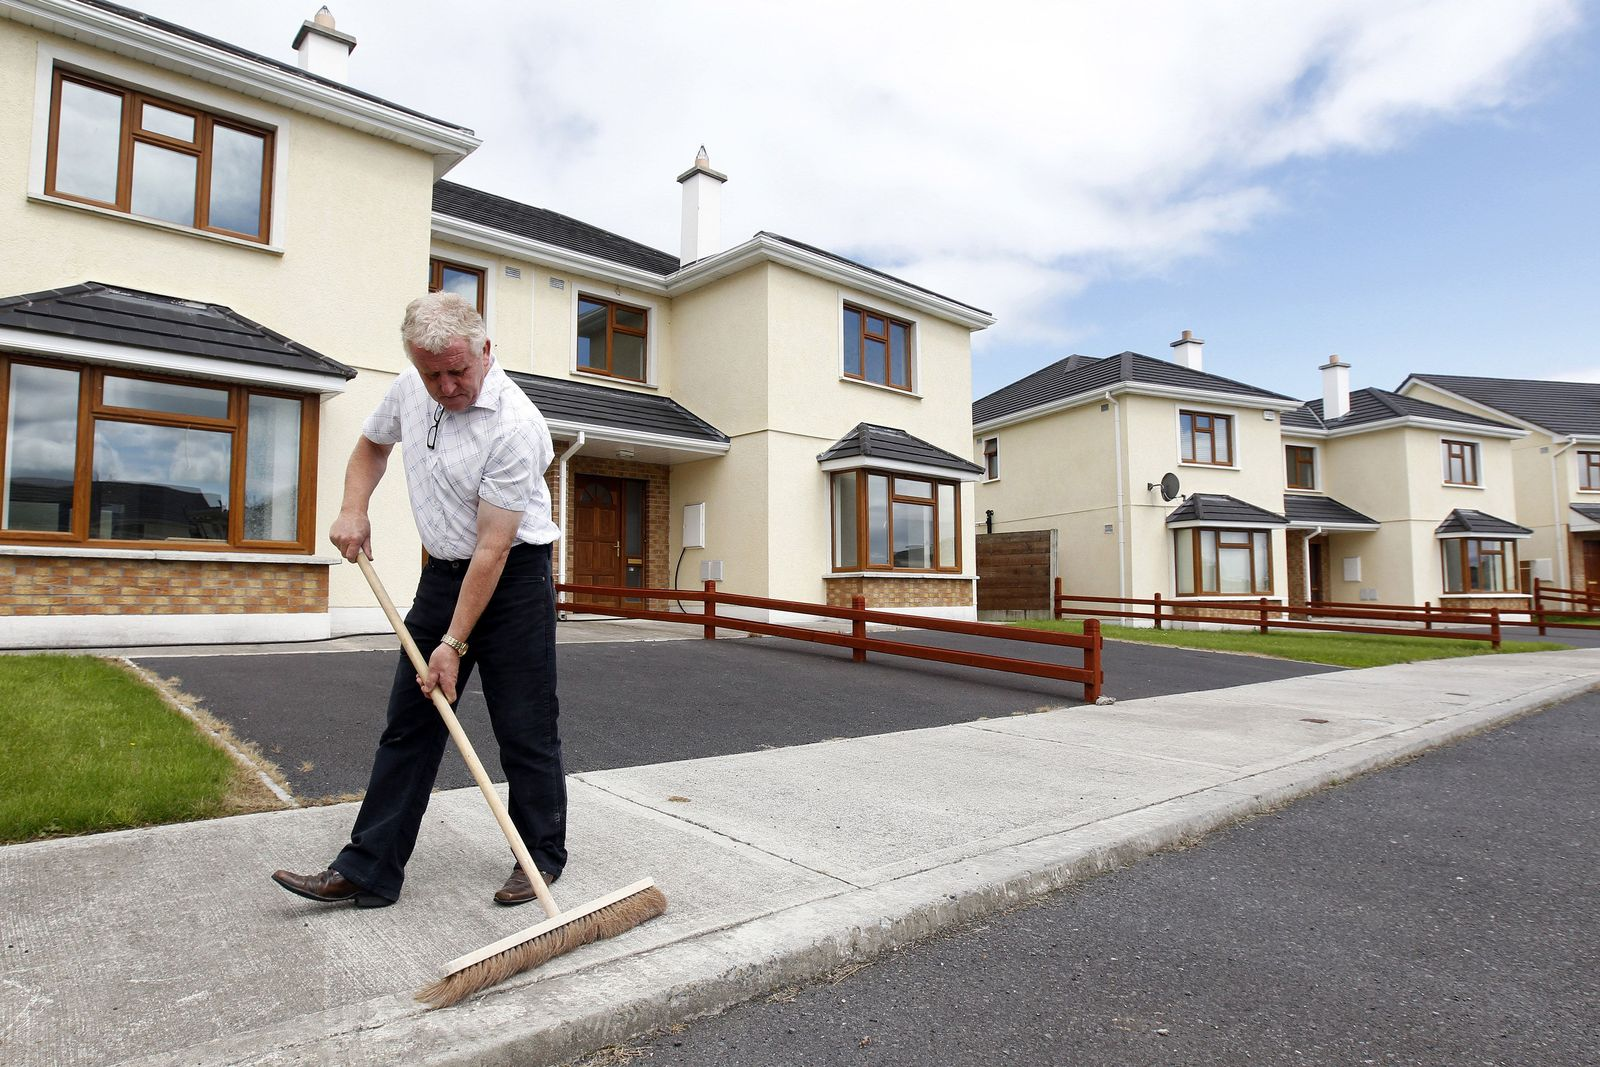 Irland / Immobilien